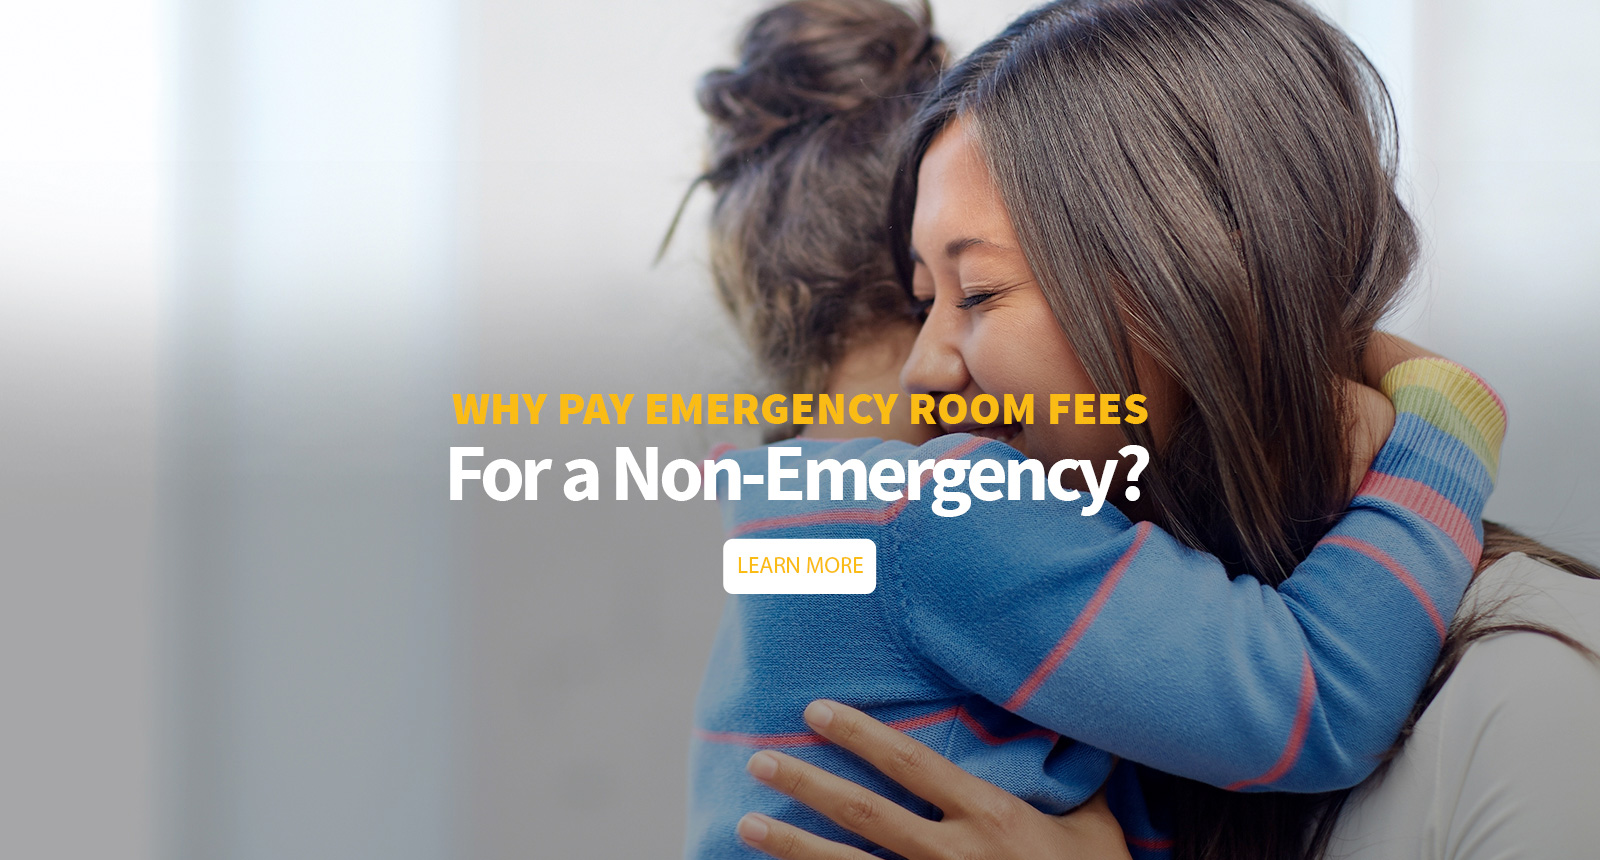 Why pay emergency room fees